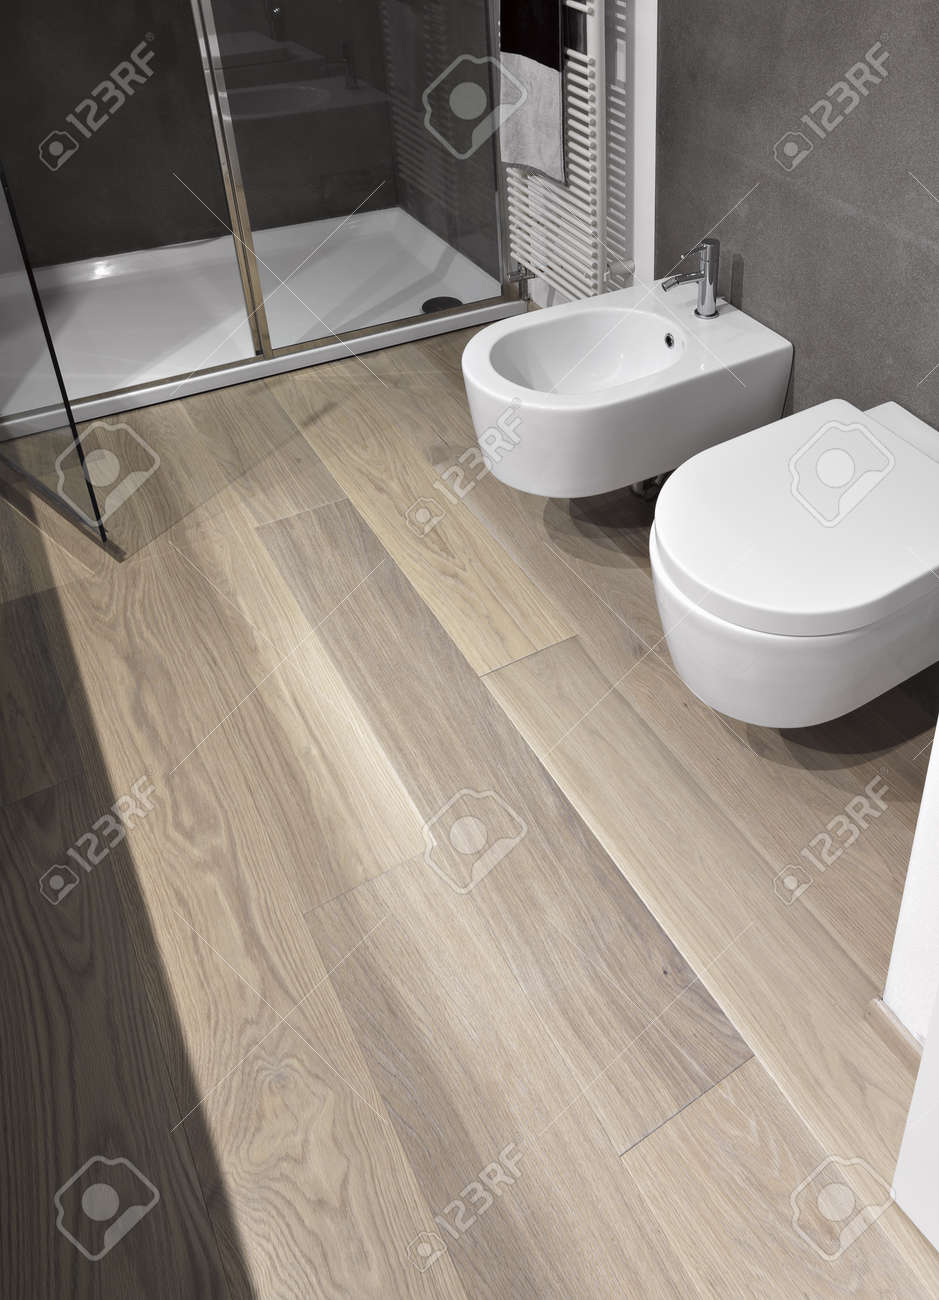 Sanitary In A Modern Bathroom With Wood Floor Stock Photo